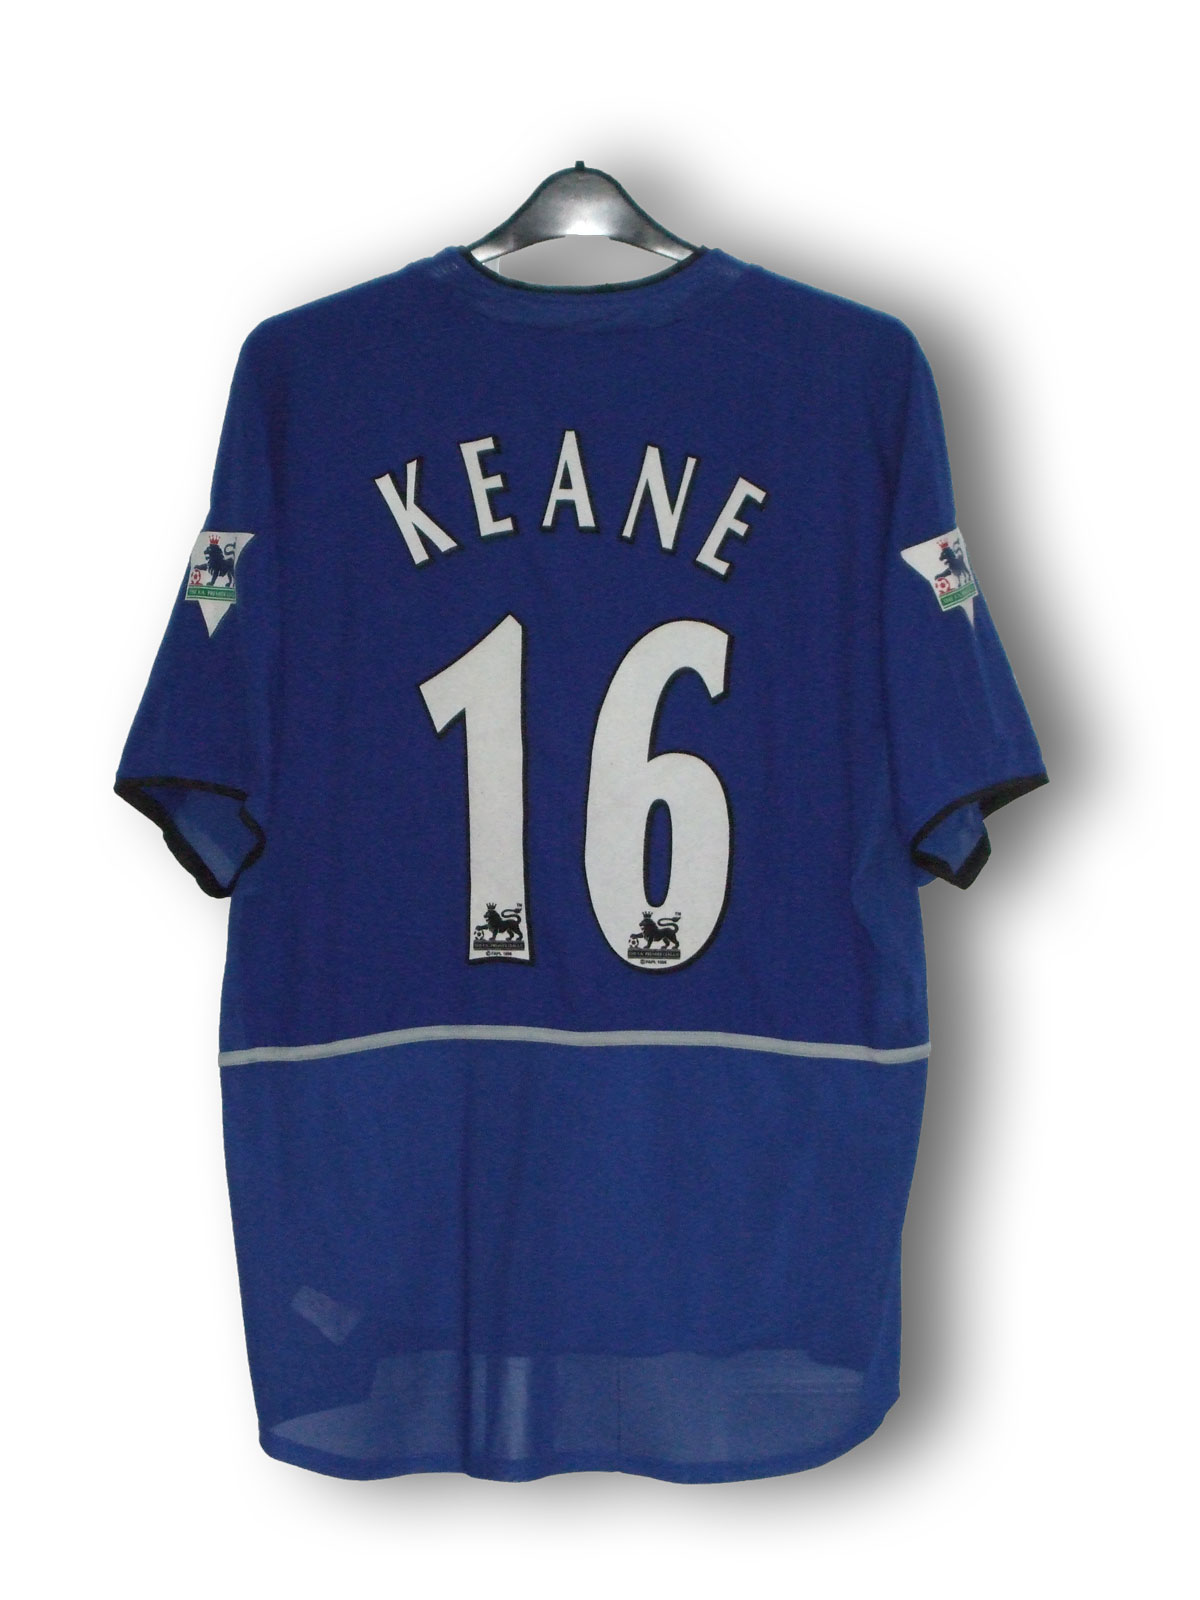 Keane_third_2002_back